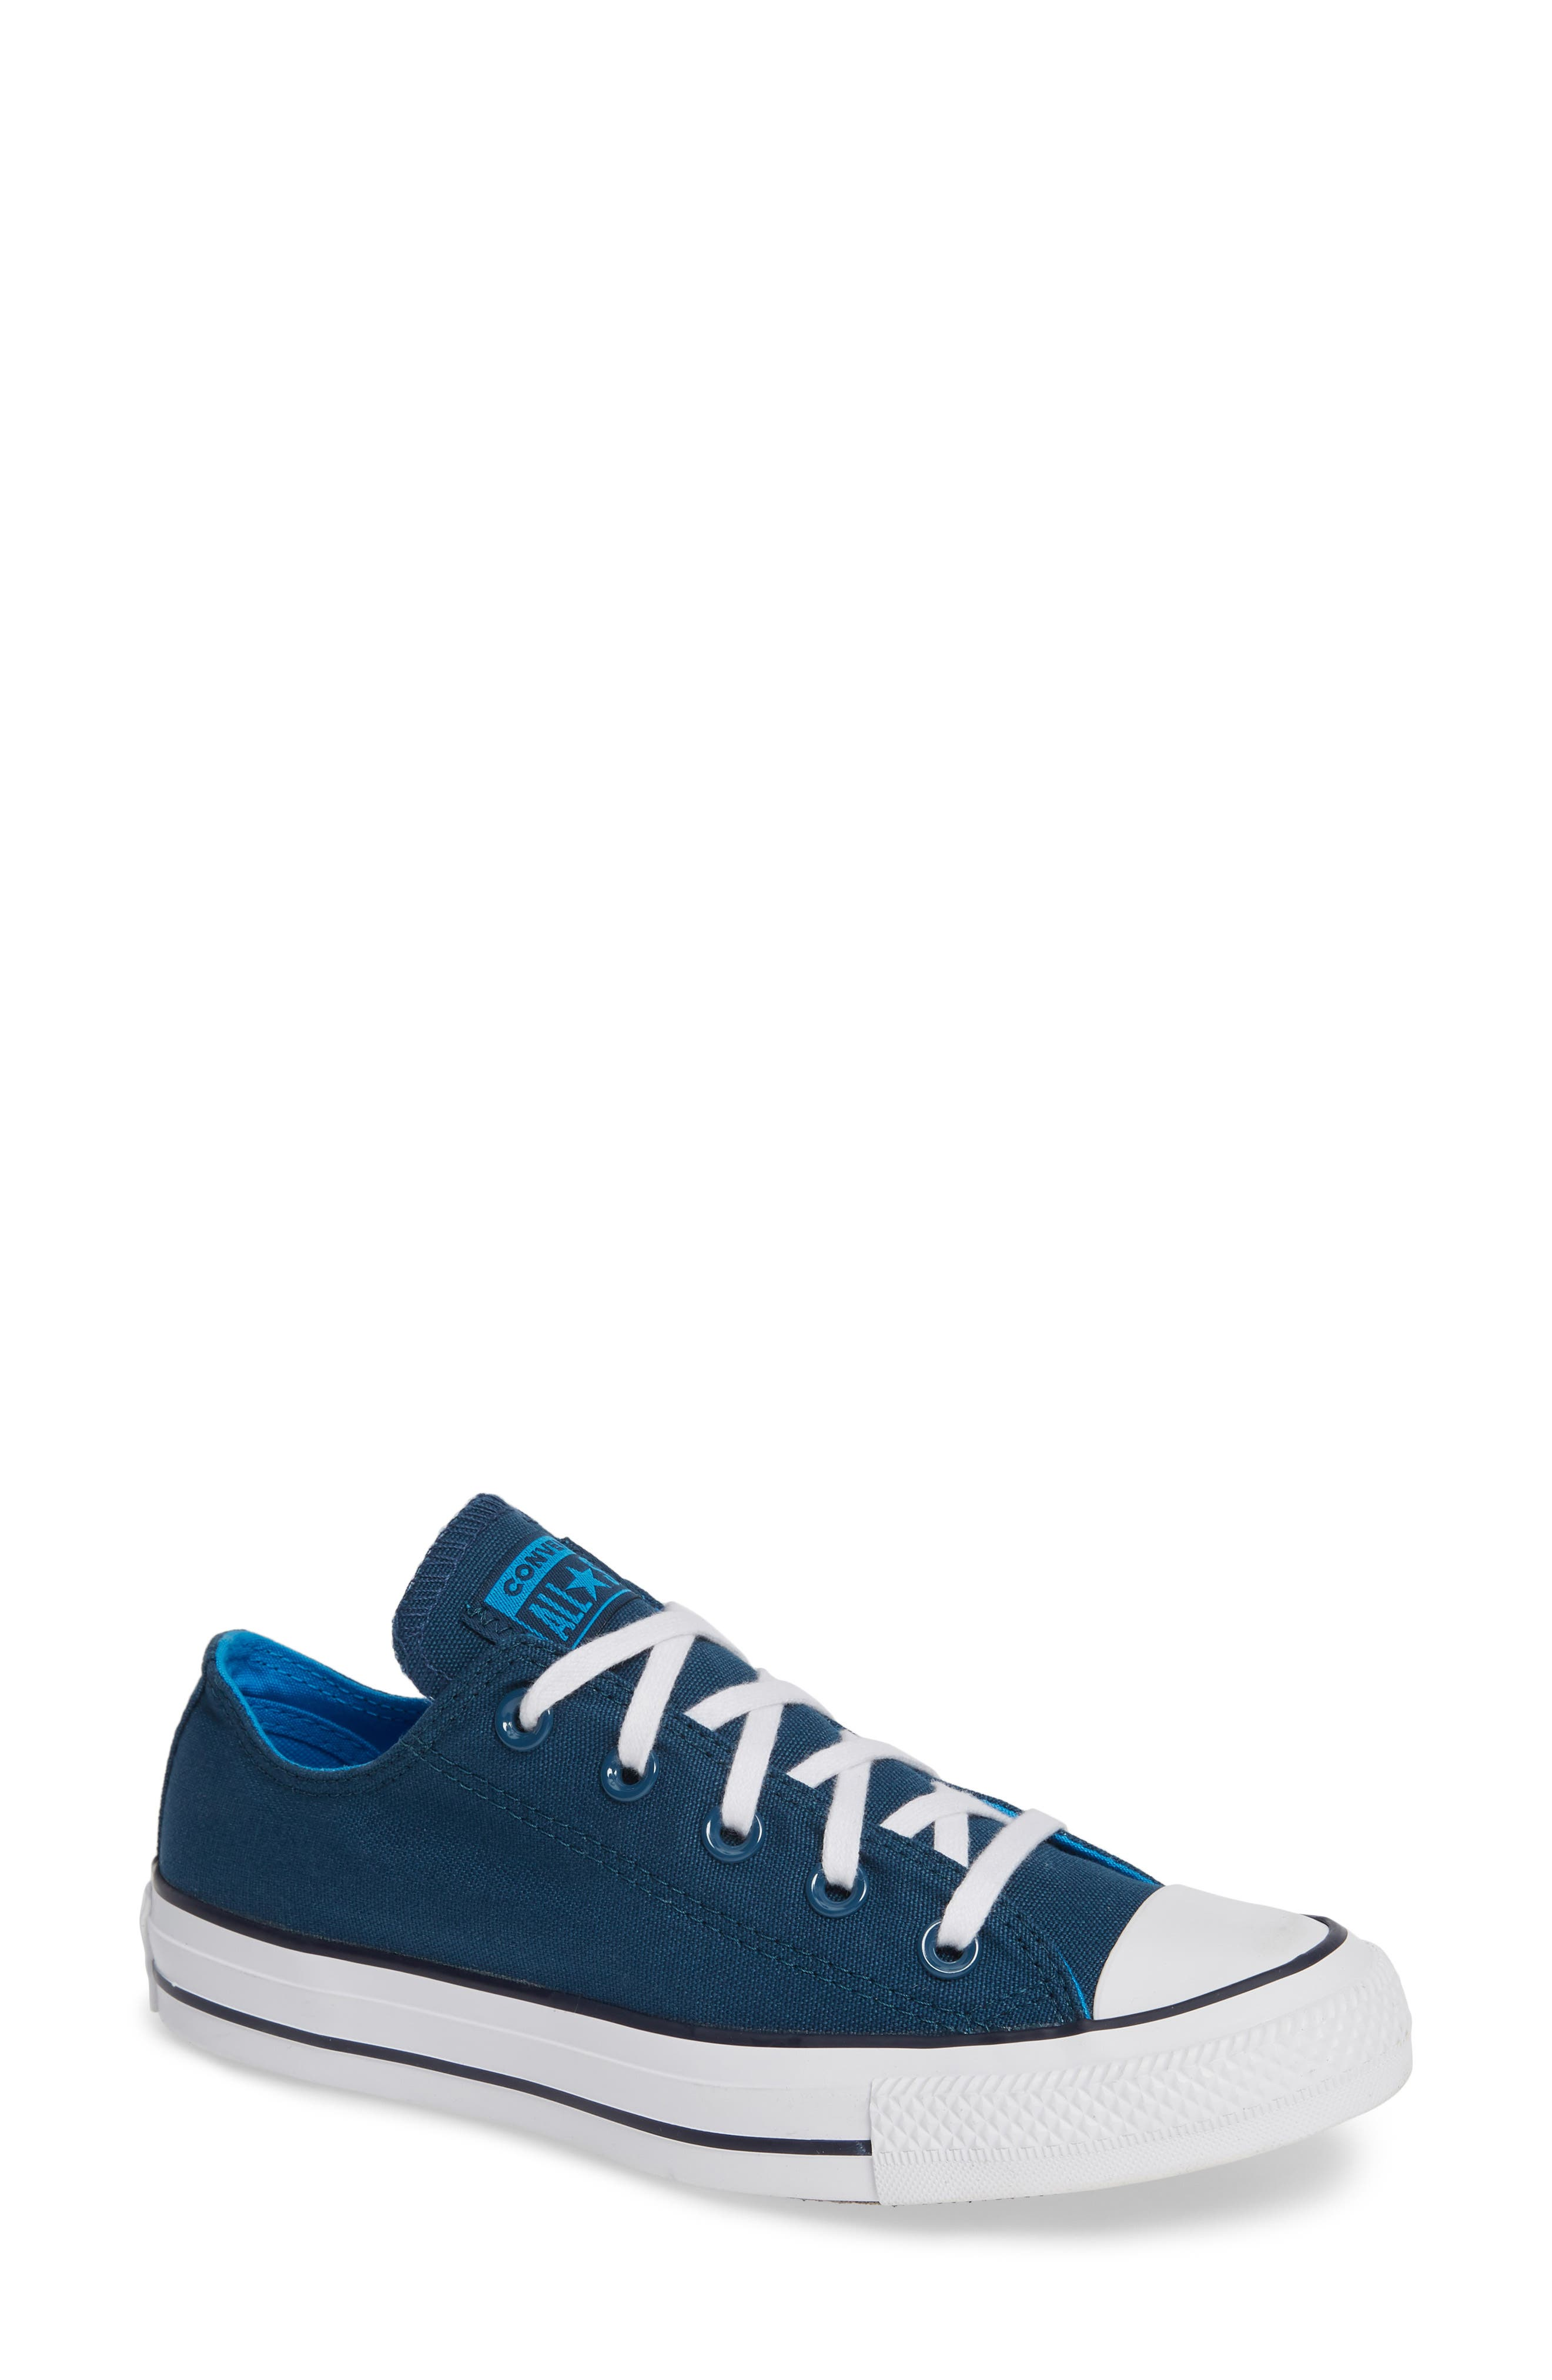 Chuck Taylor<sup>®</sup> All Star<sup>®</sup> Seasonal Ox Low Top Sneaker,                         Main,                         color, BLUE FIR